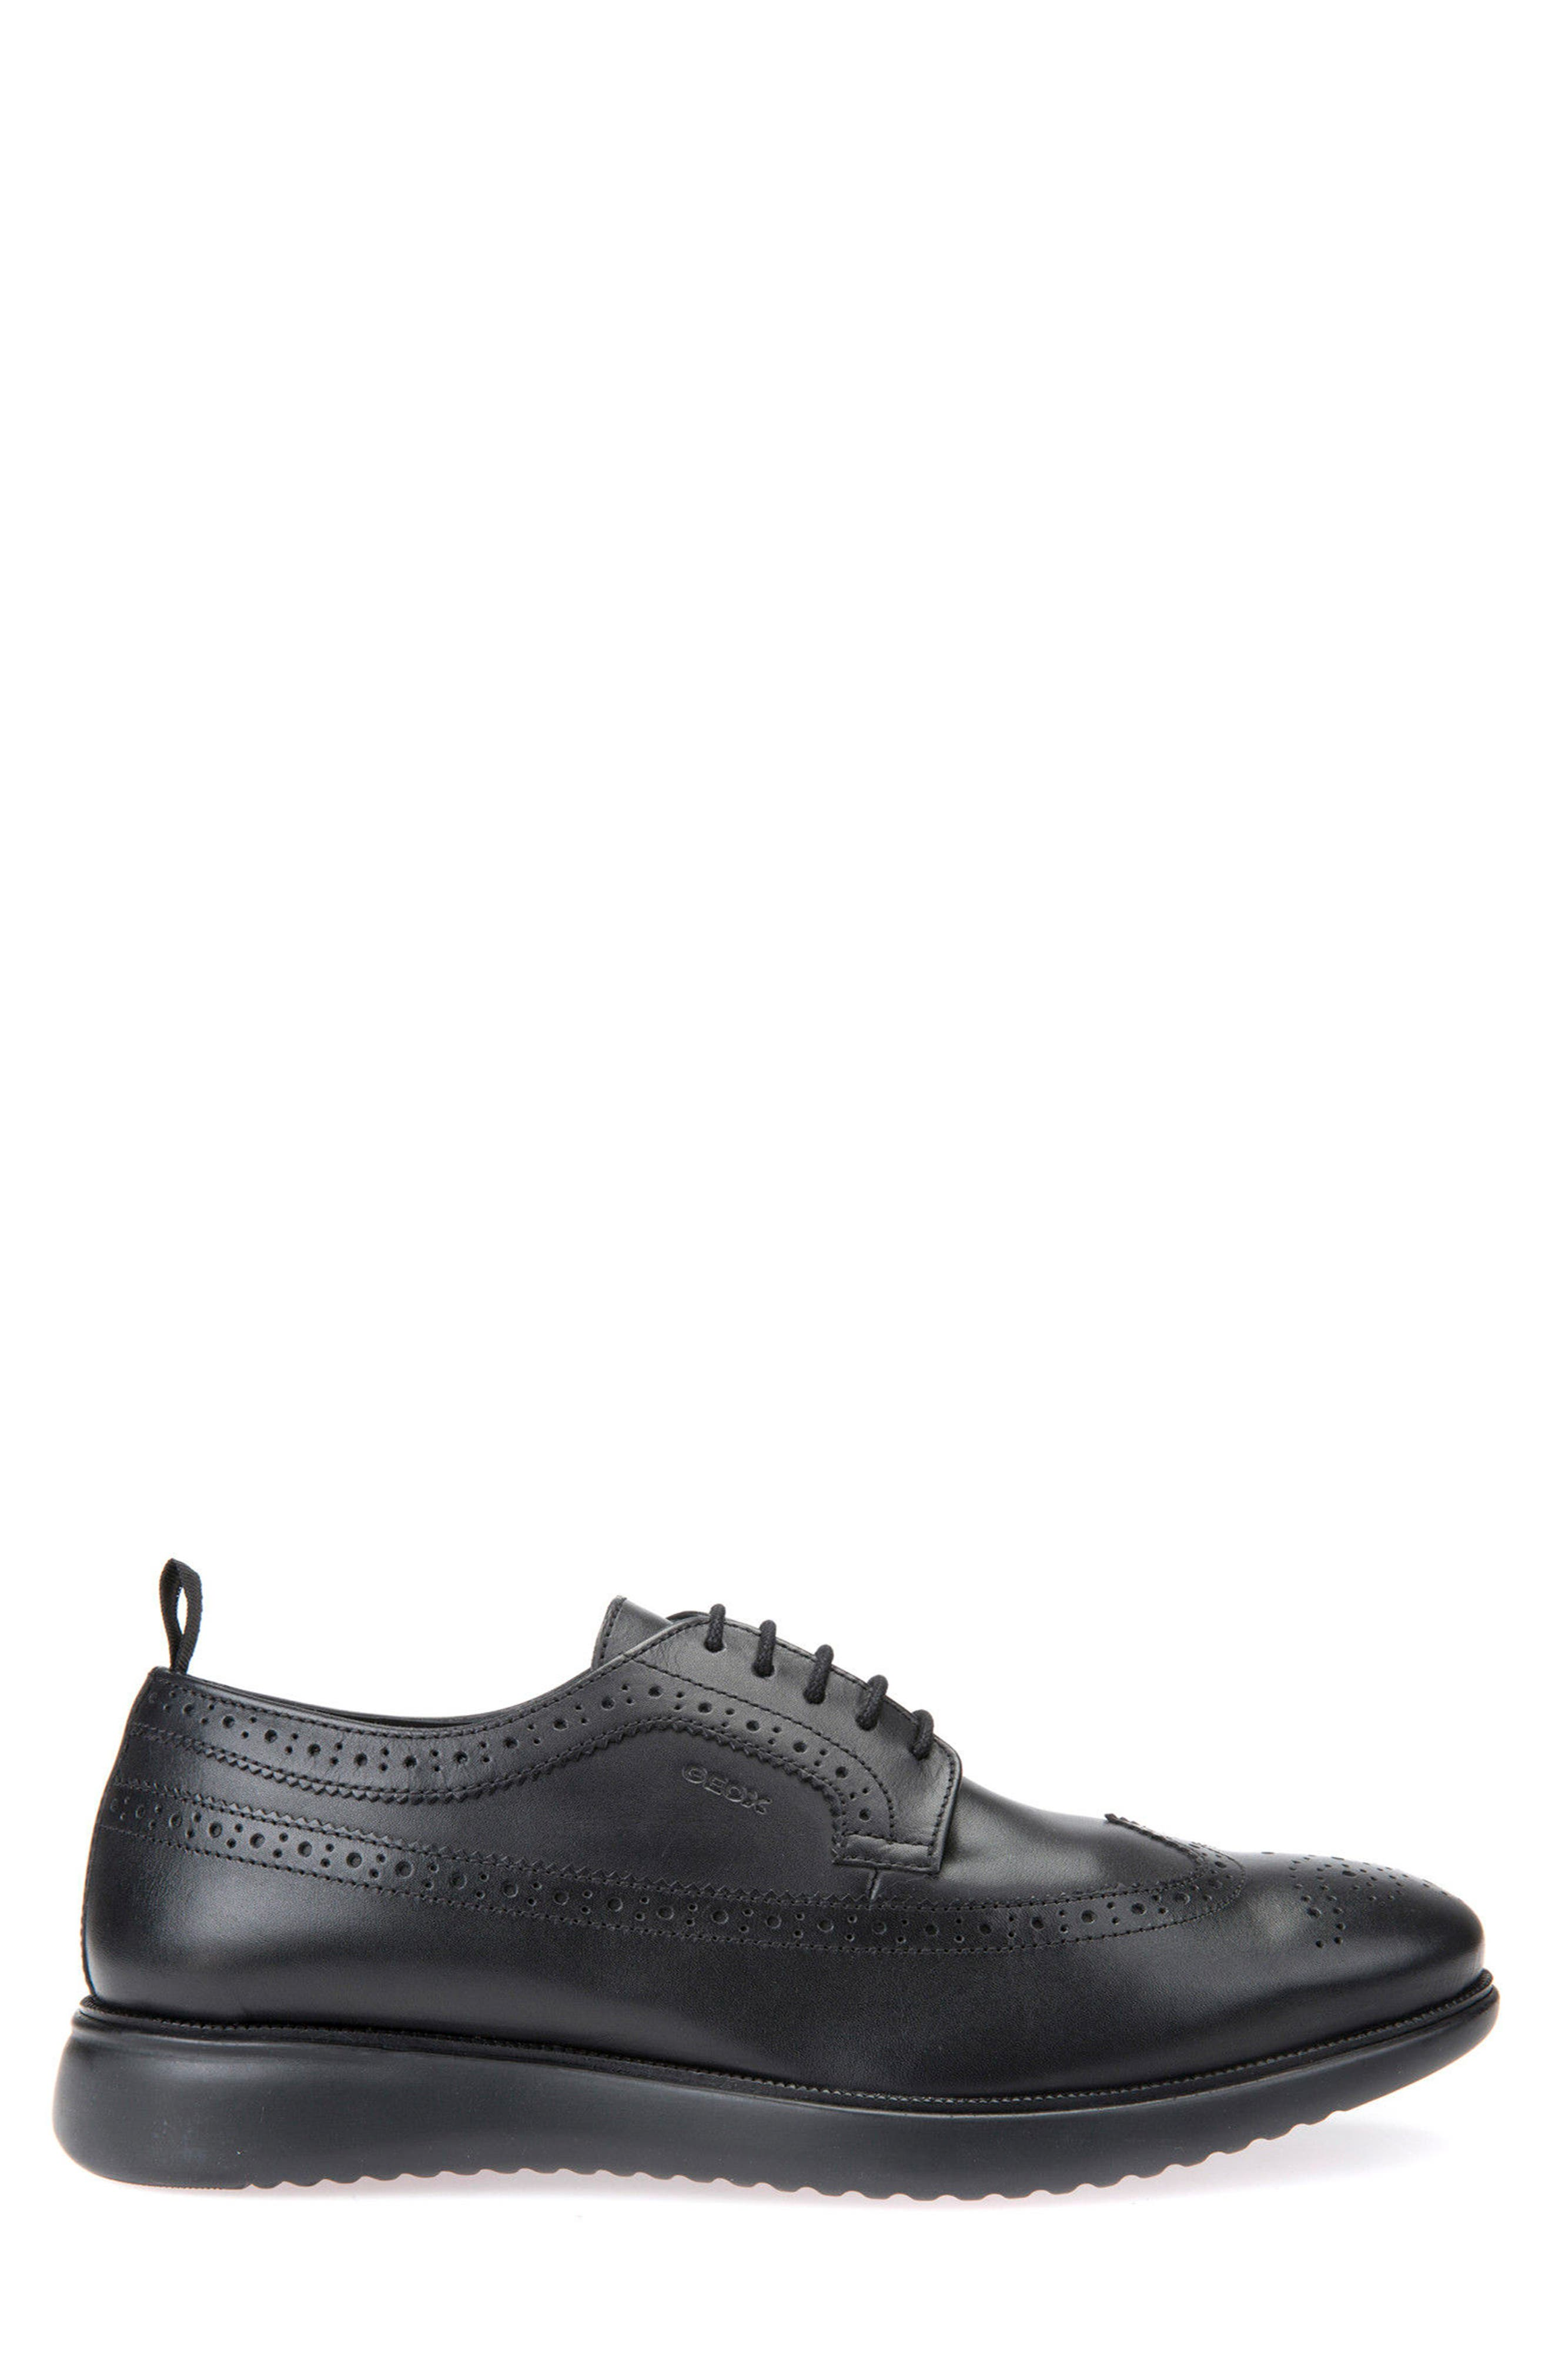 Winfred 3 Wingtip,                             Alternate thumbnail 3, color,                             001